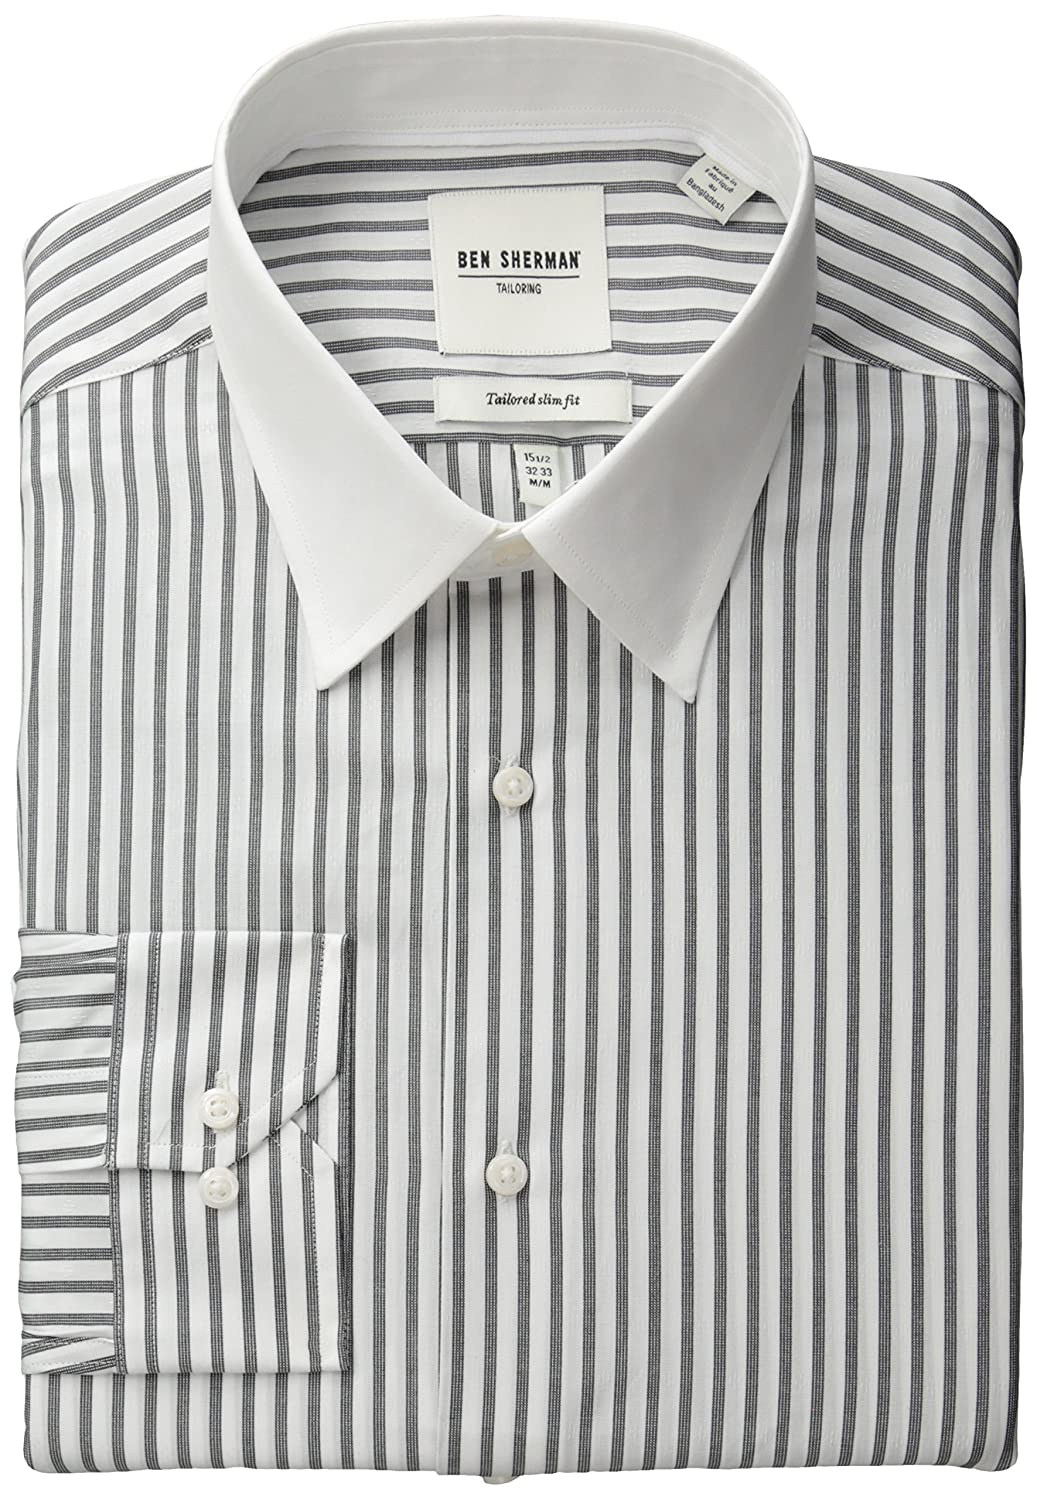 Edwardian Men's Shirts & Sweaters Ben Sherman Mens Slim Fit Dobby Stripe Bankers Collar Dress Shirt $29.95 AT vintagedancer.com